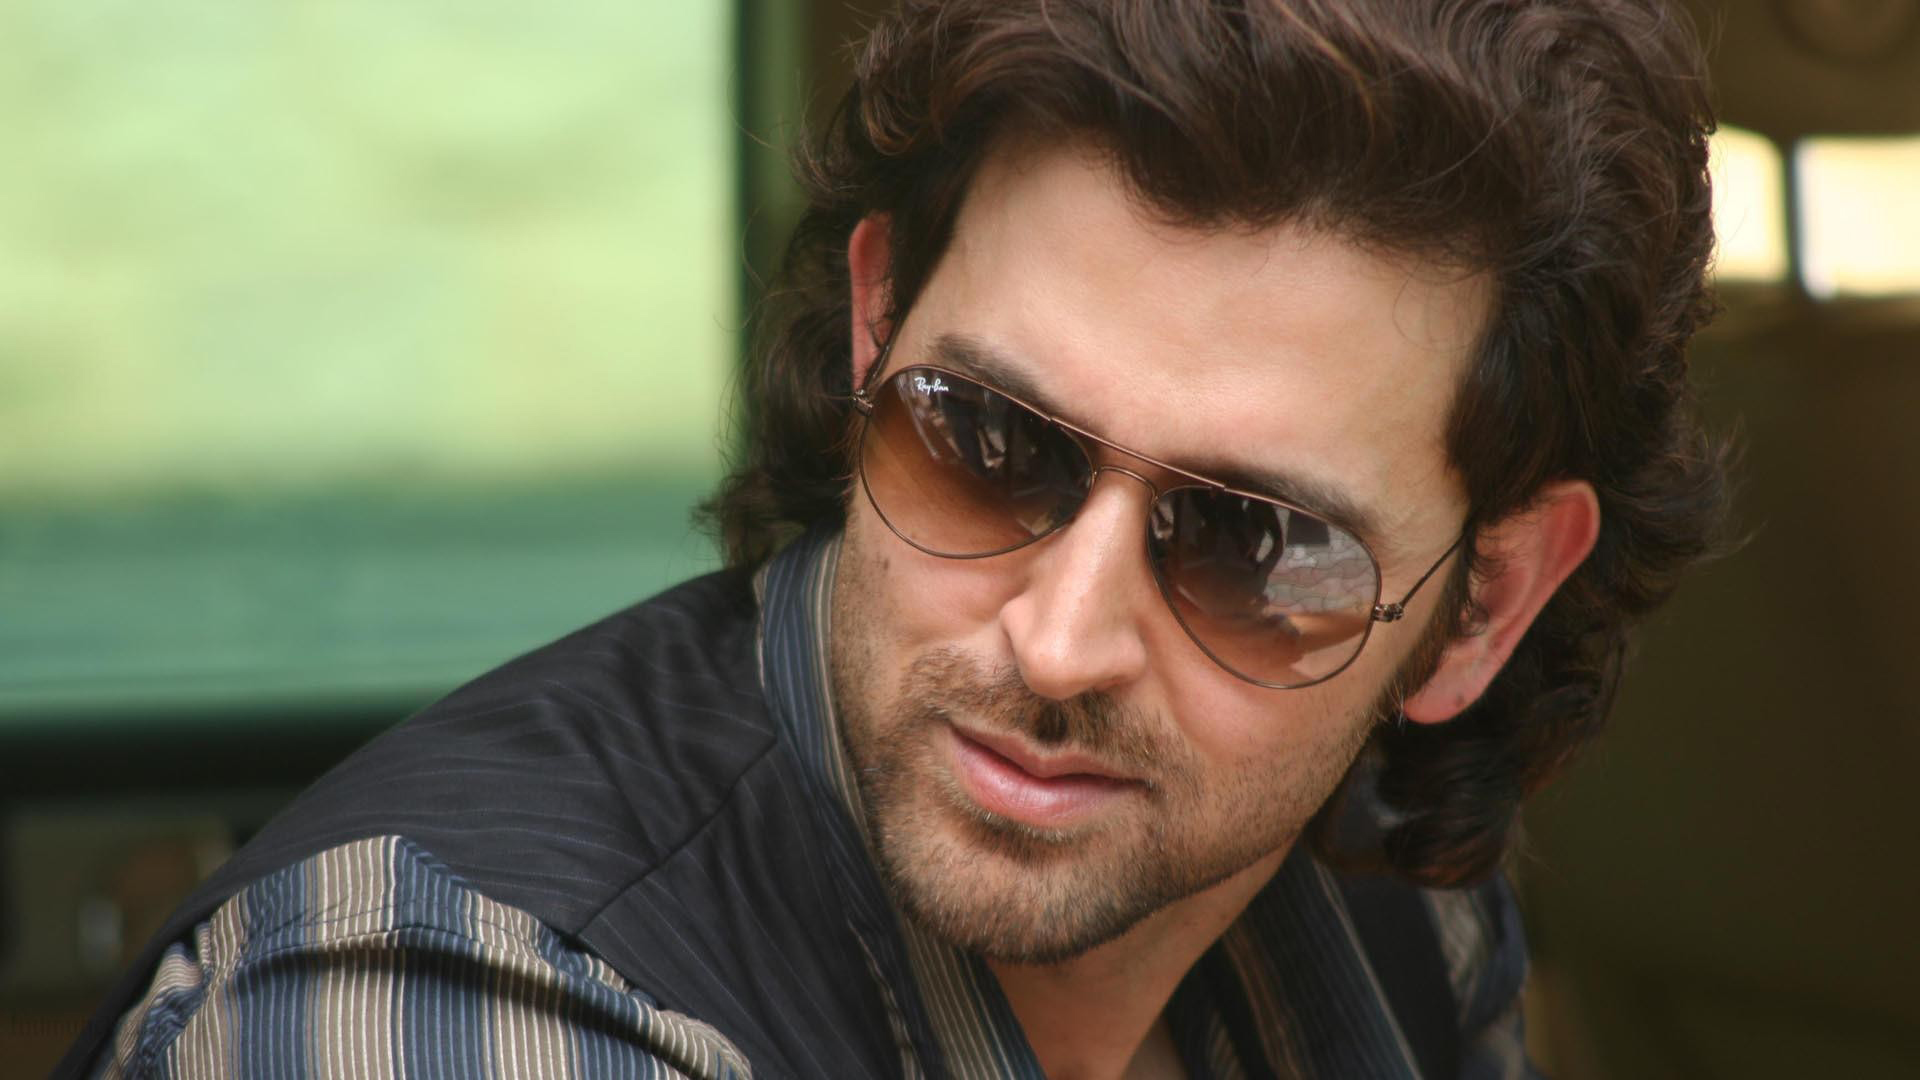 hrithik roshan wallpaper background